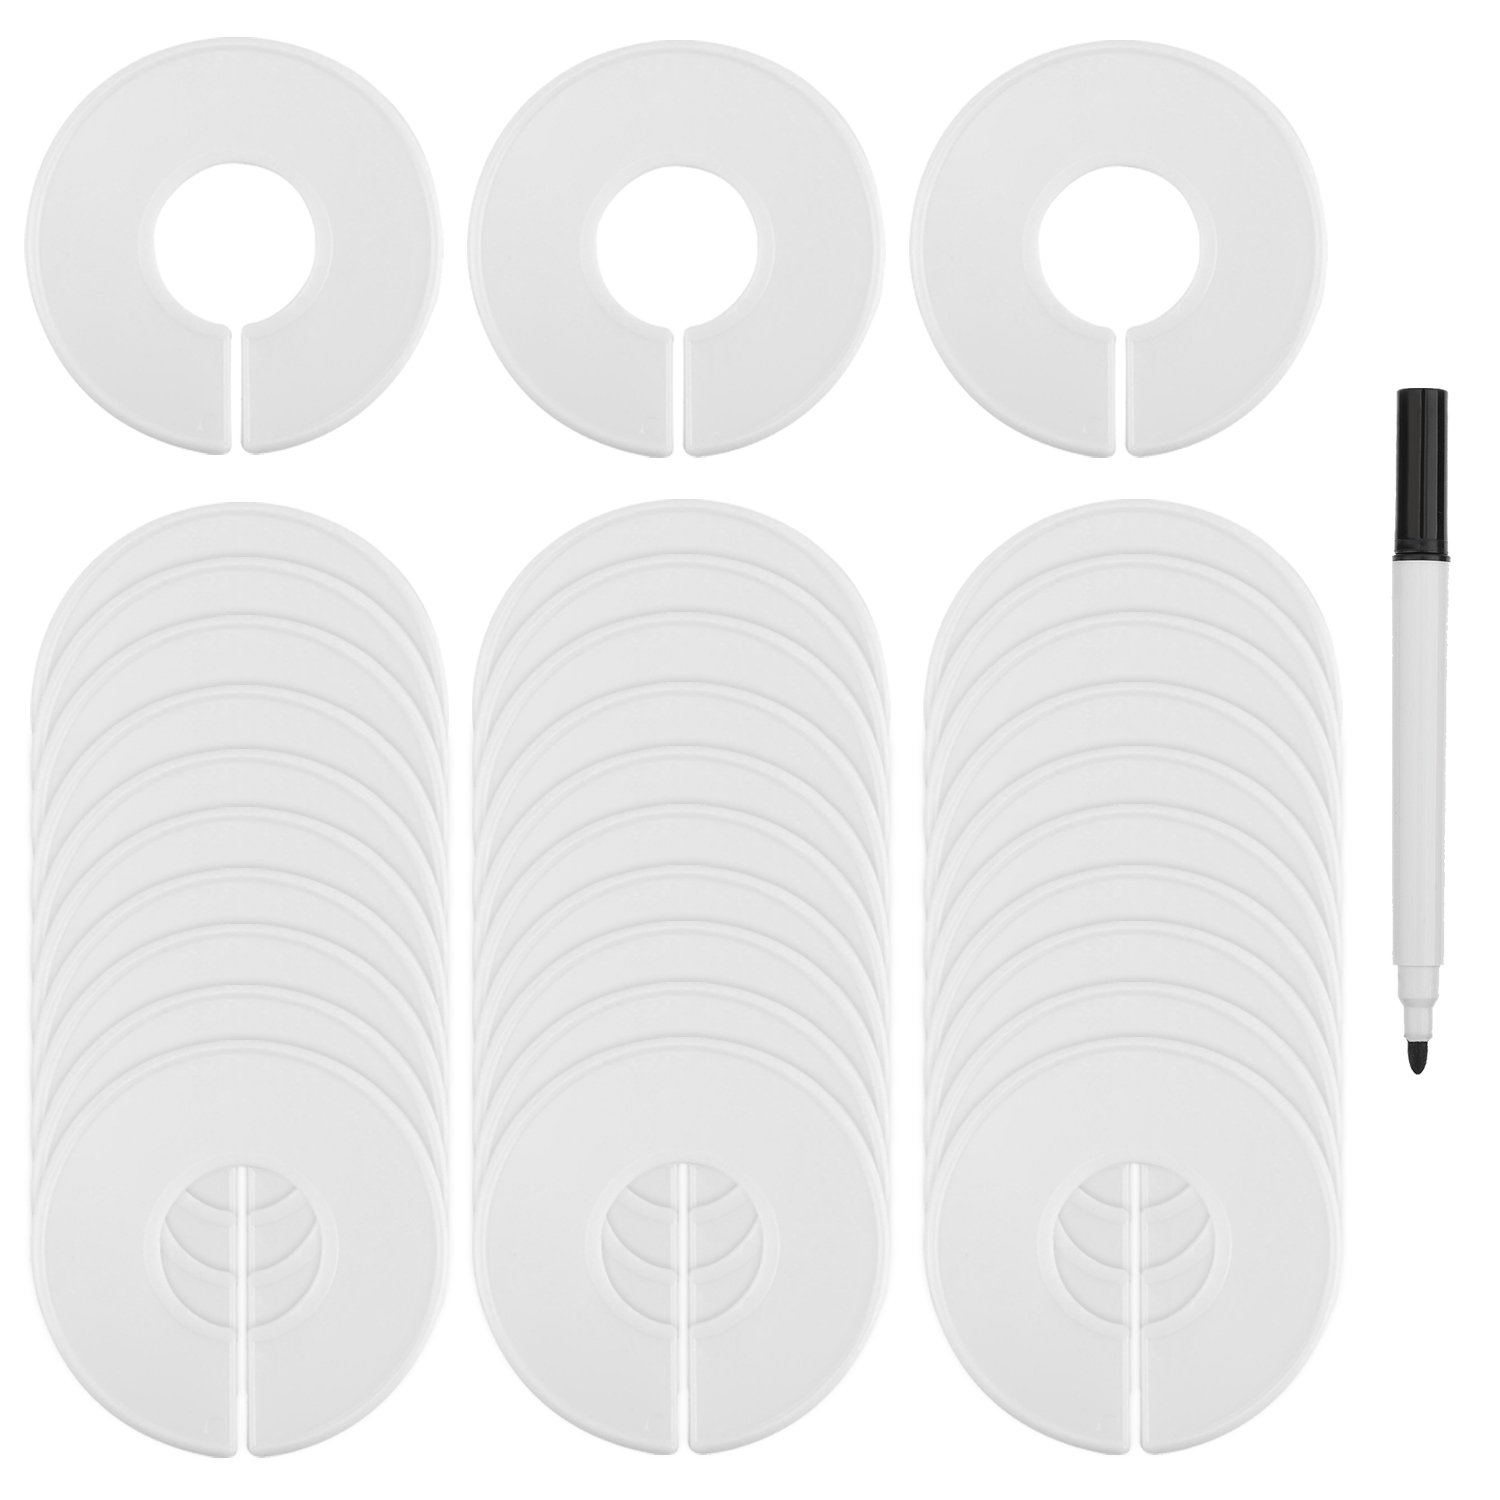 Blulu Size Clothing Dividers Rack Dividers Round Hangers Closet Dividers 30 Pack with Marker Pen